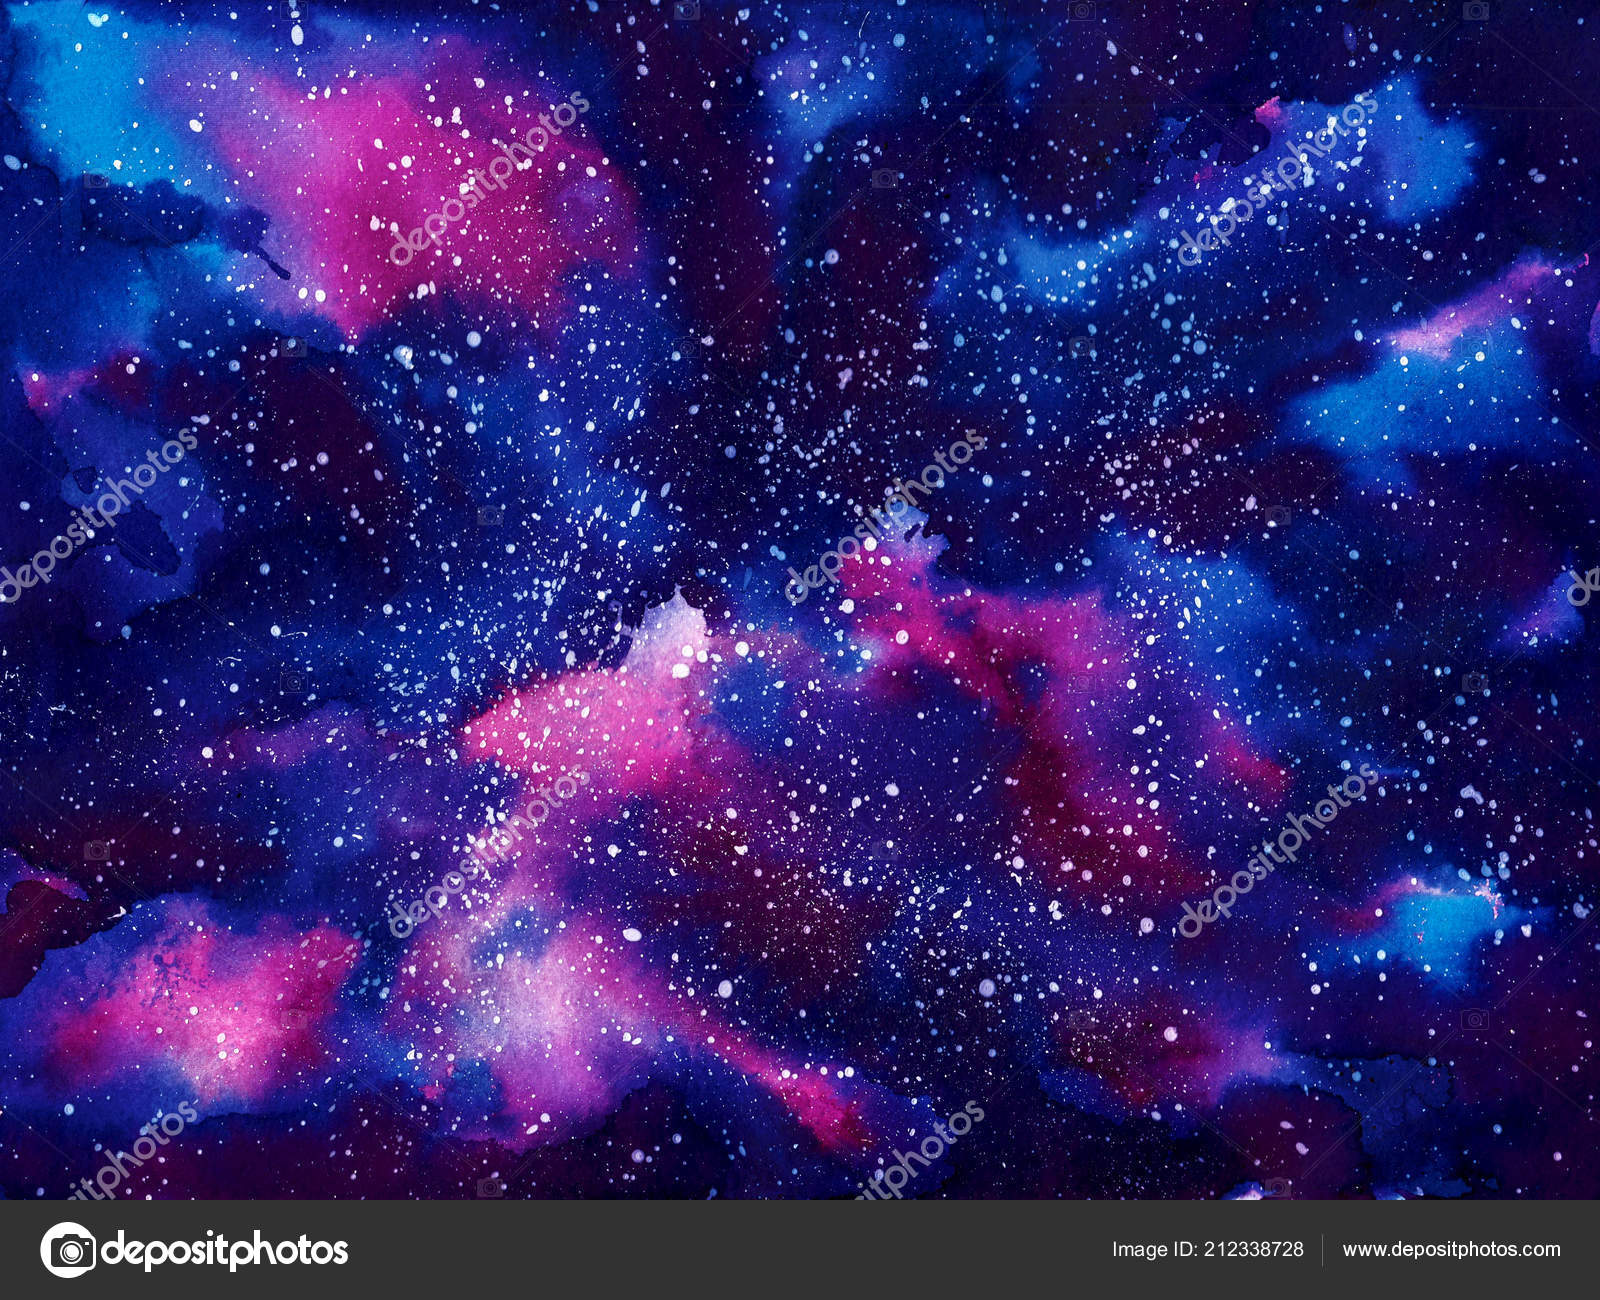 watercolor painted space universe galaxy stars splash 21233 | depositphotos 212338728 stock photo watercolor painted space universe galaxy